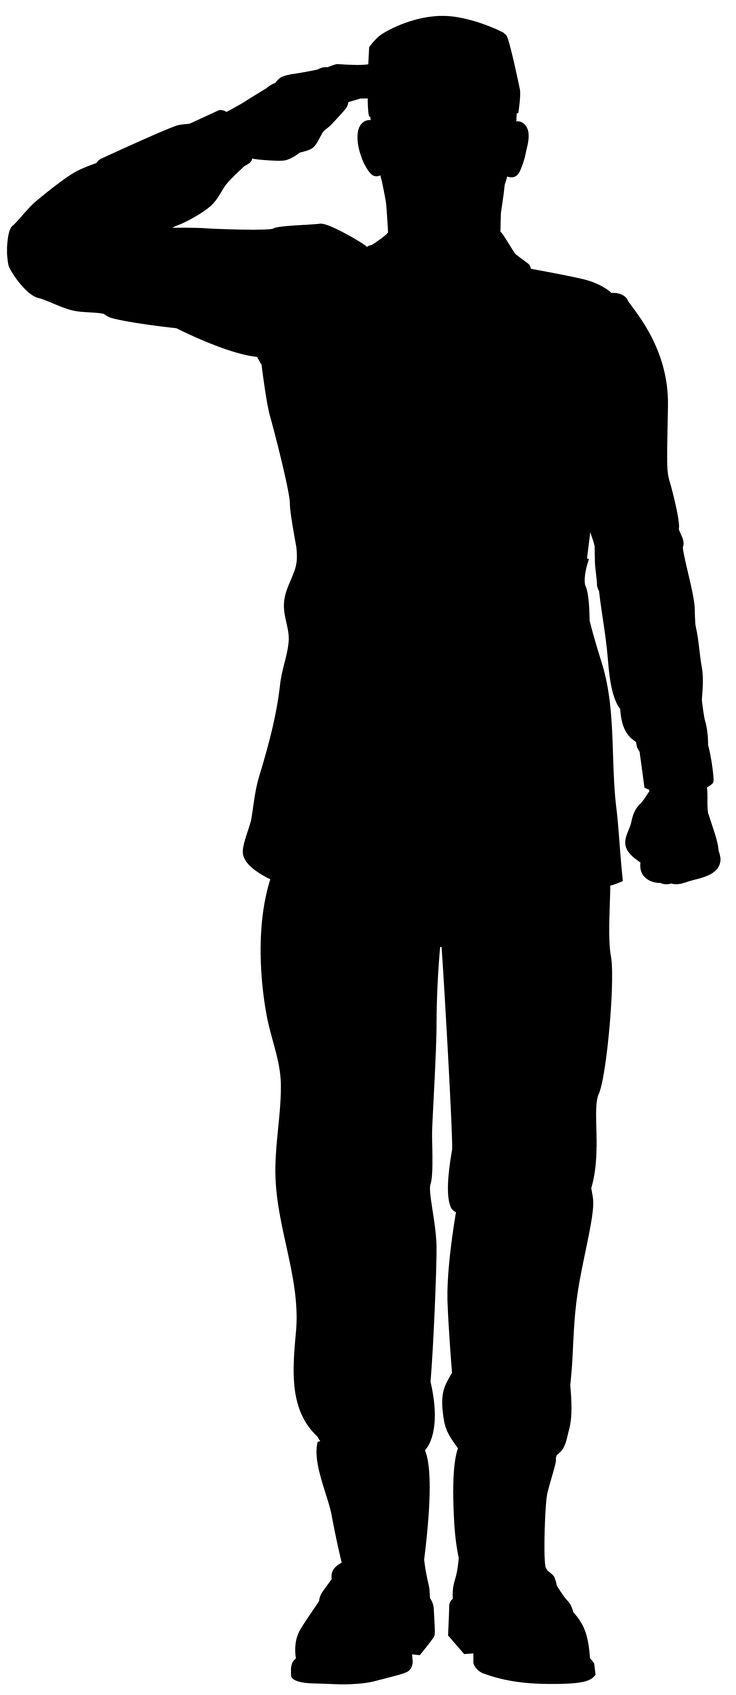 Soldier salute silhouette